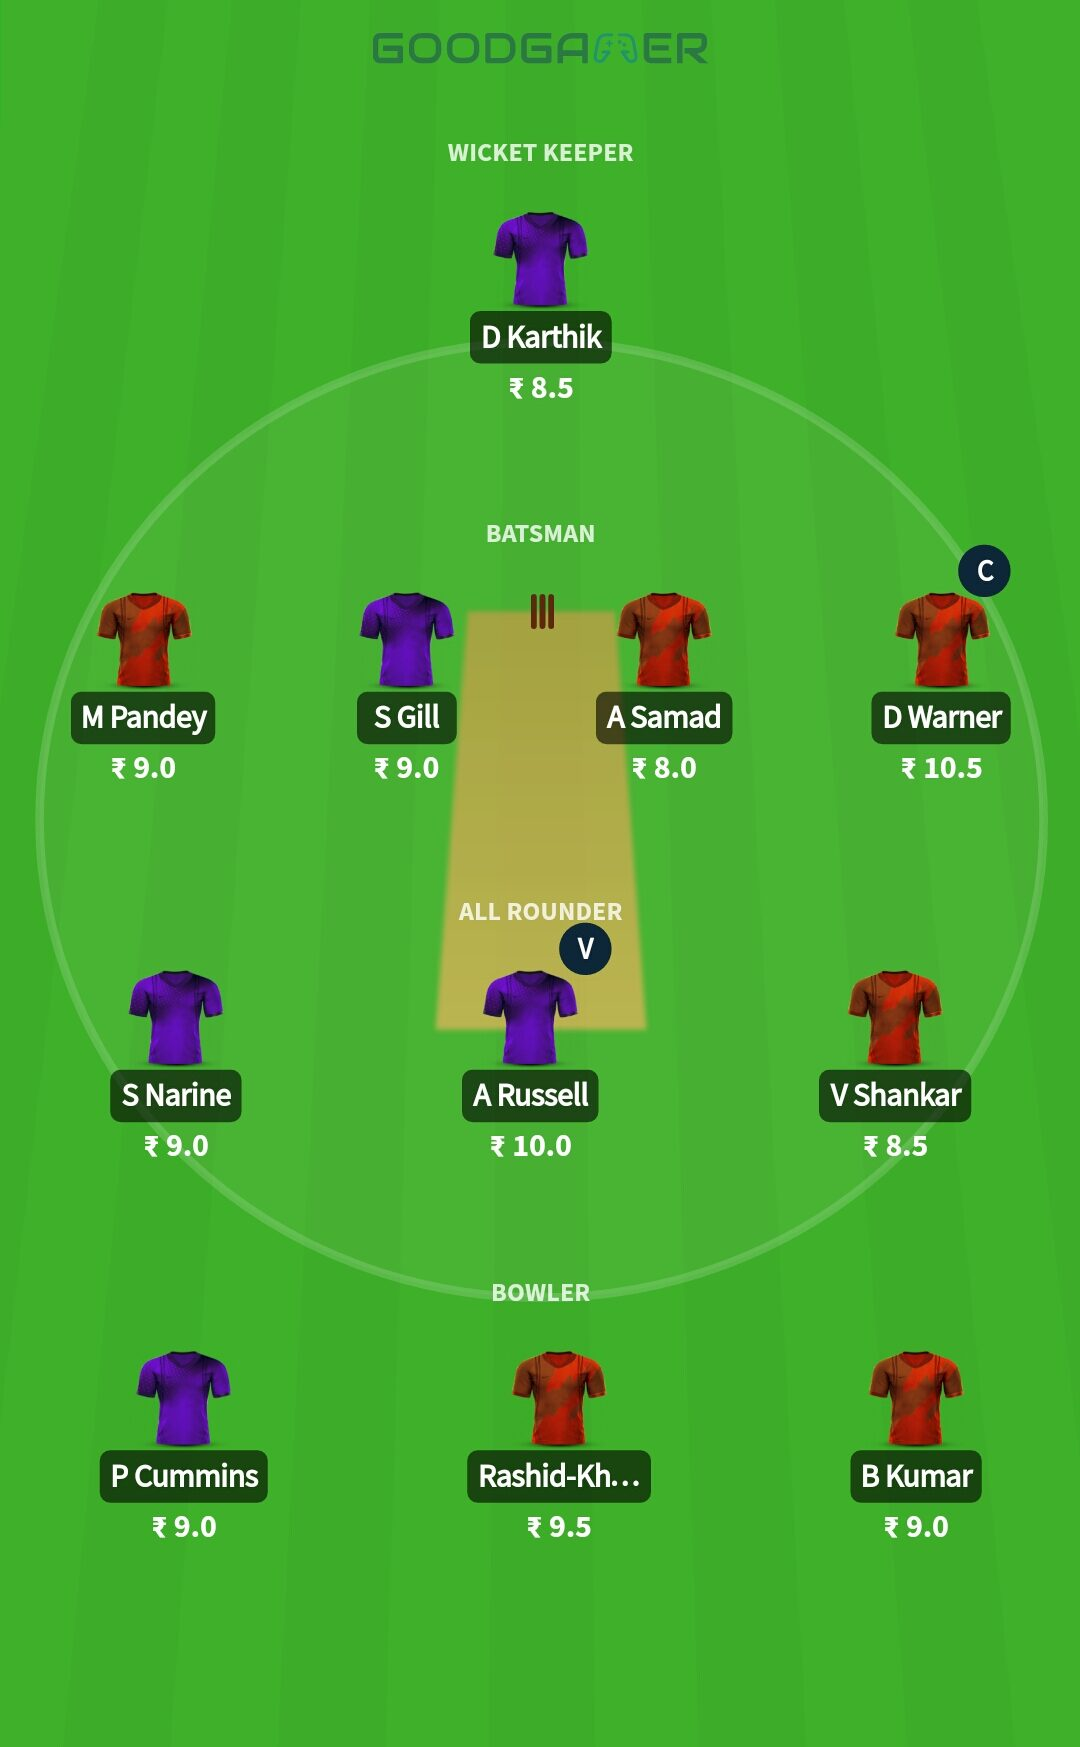 IPL 2021: Match 3, SRH vs KKR, Good gamer fantasy XI Prediction